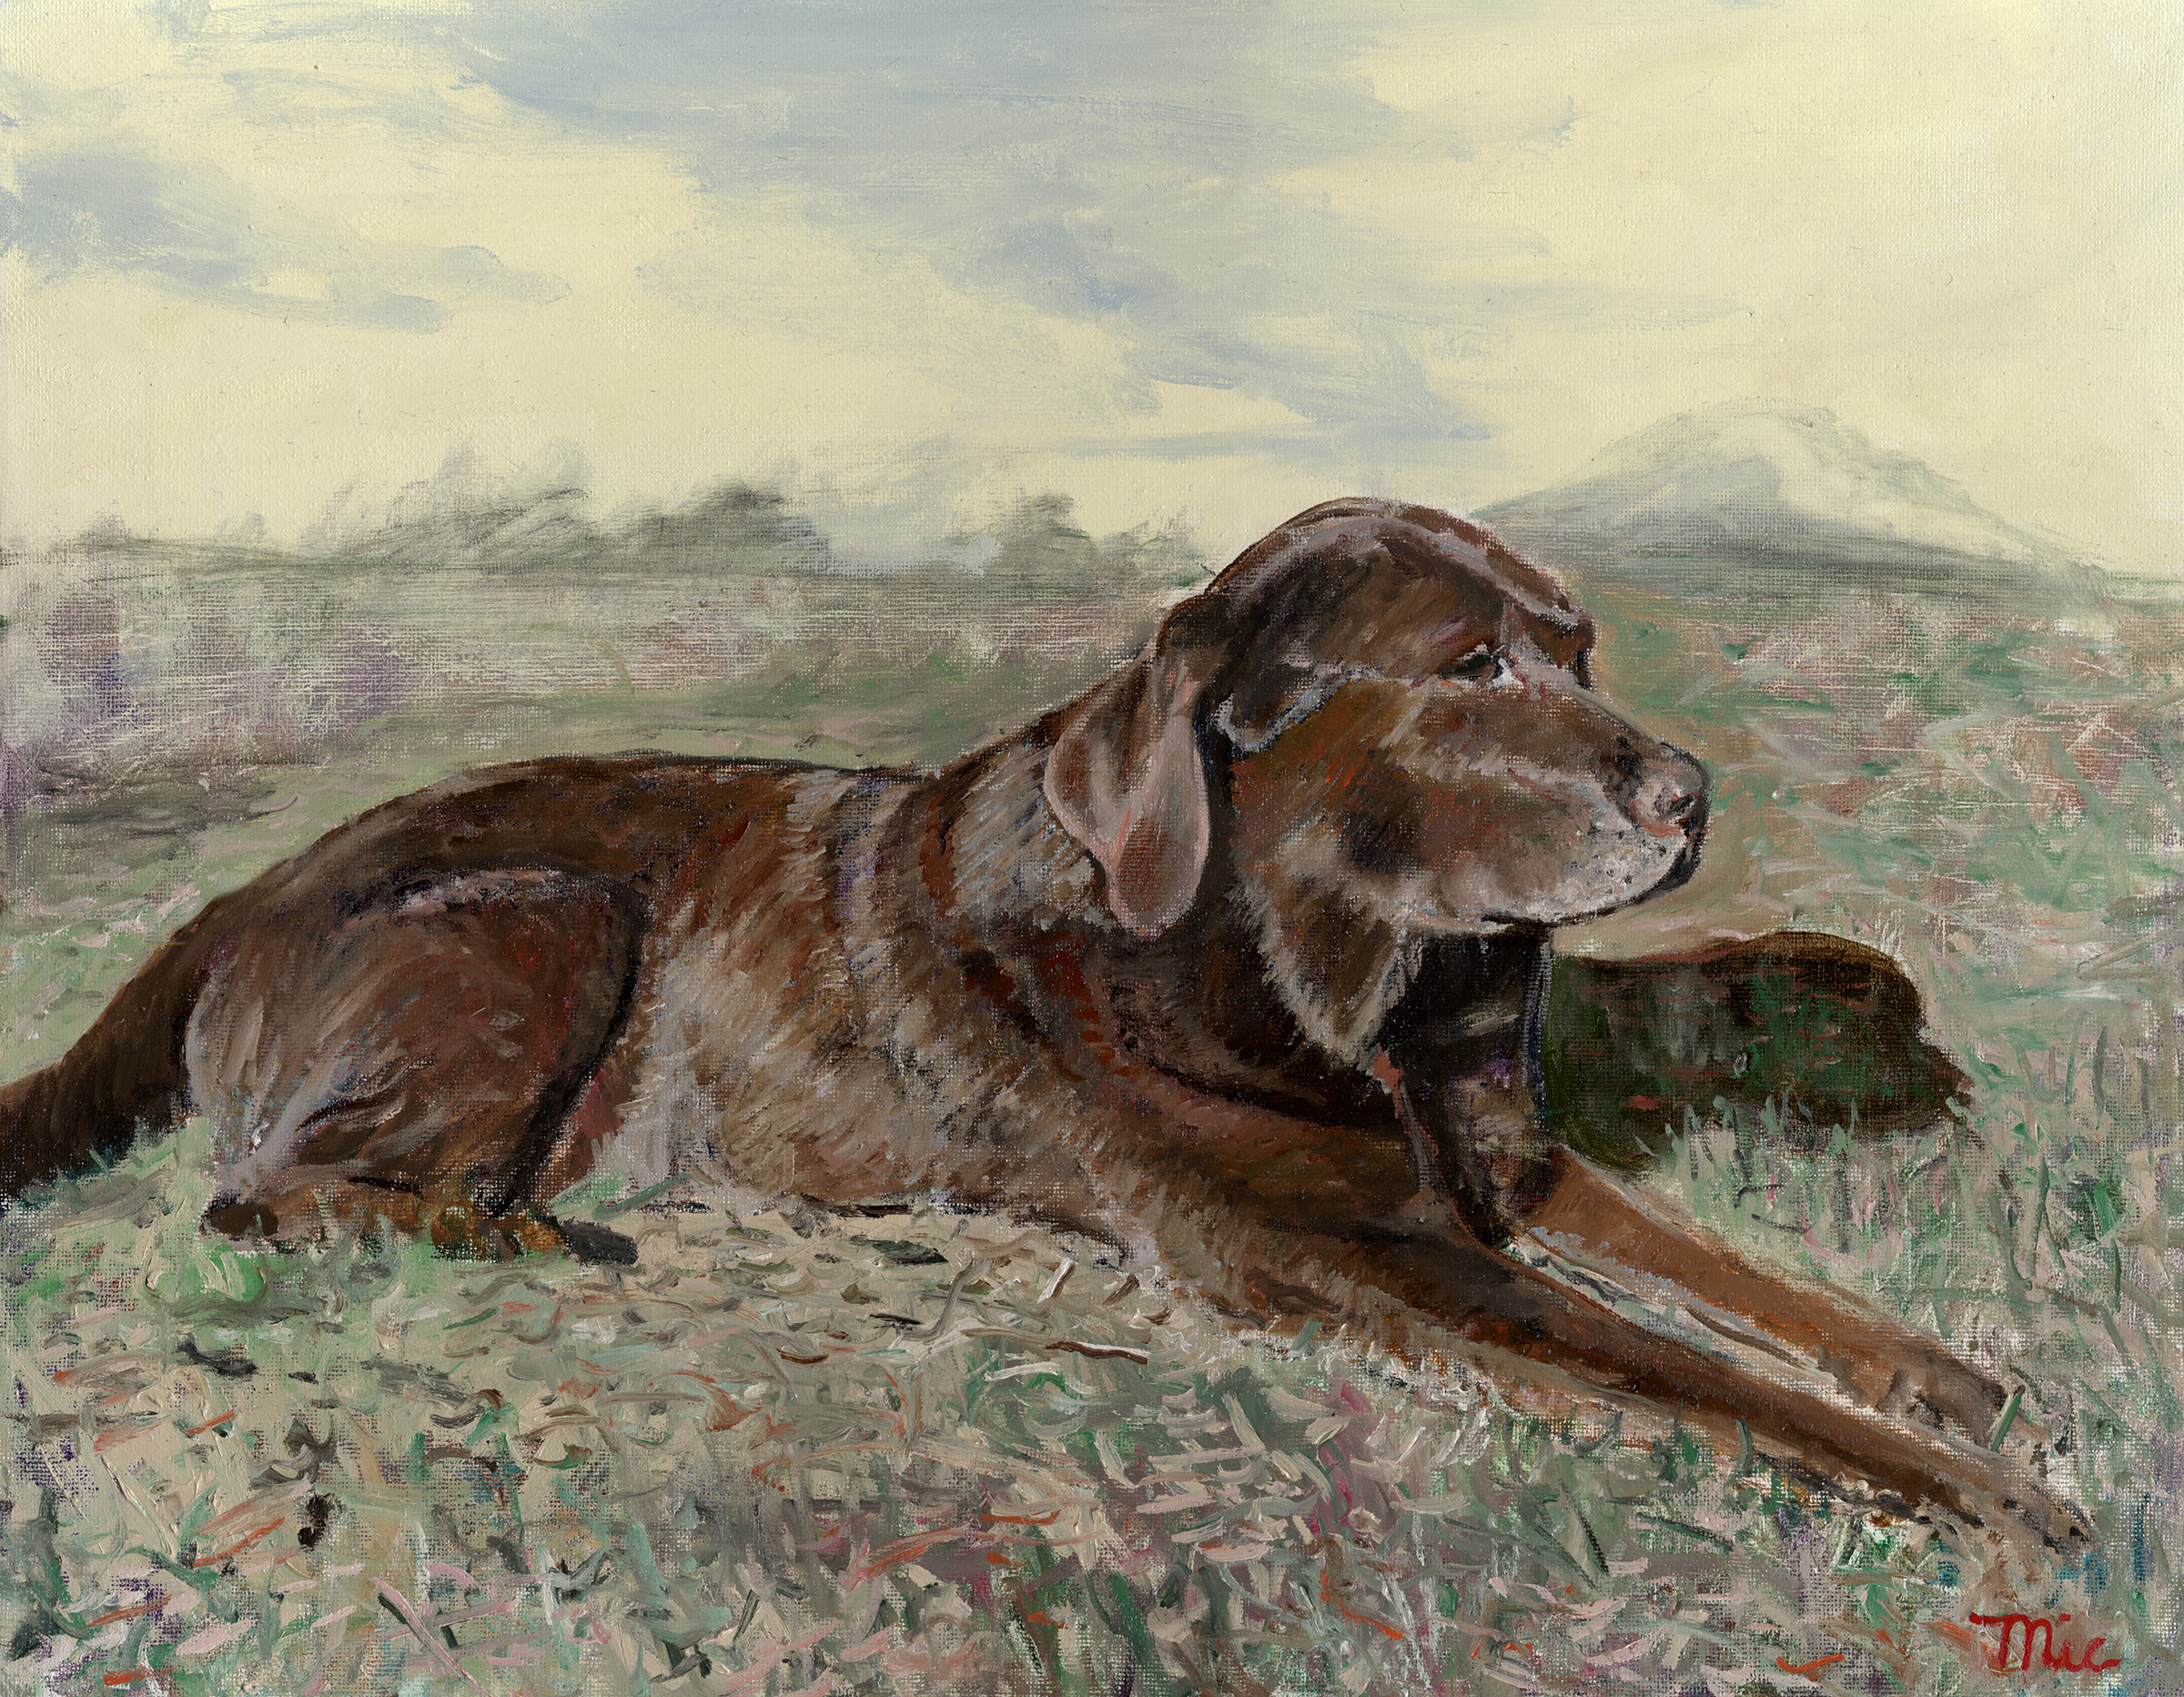 """Mans Best Friend"" - Private Collection of Paul Miller.Giclee Limited Edition and canvas prints are available. Please visit the prints gallery."